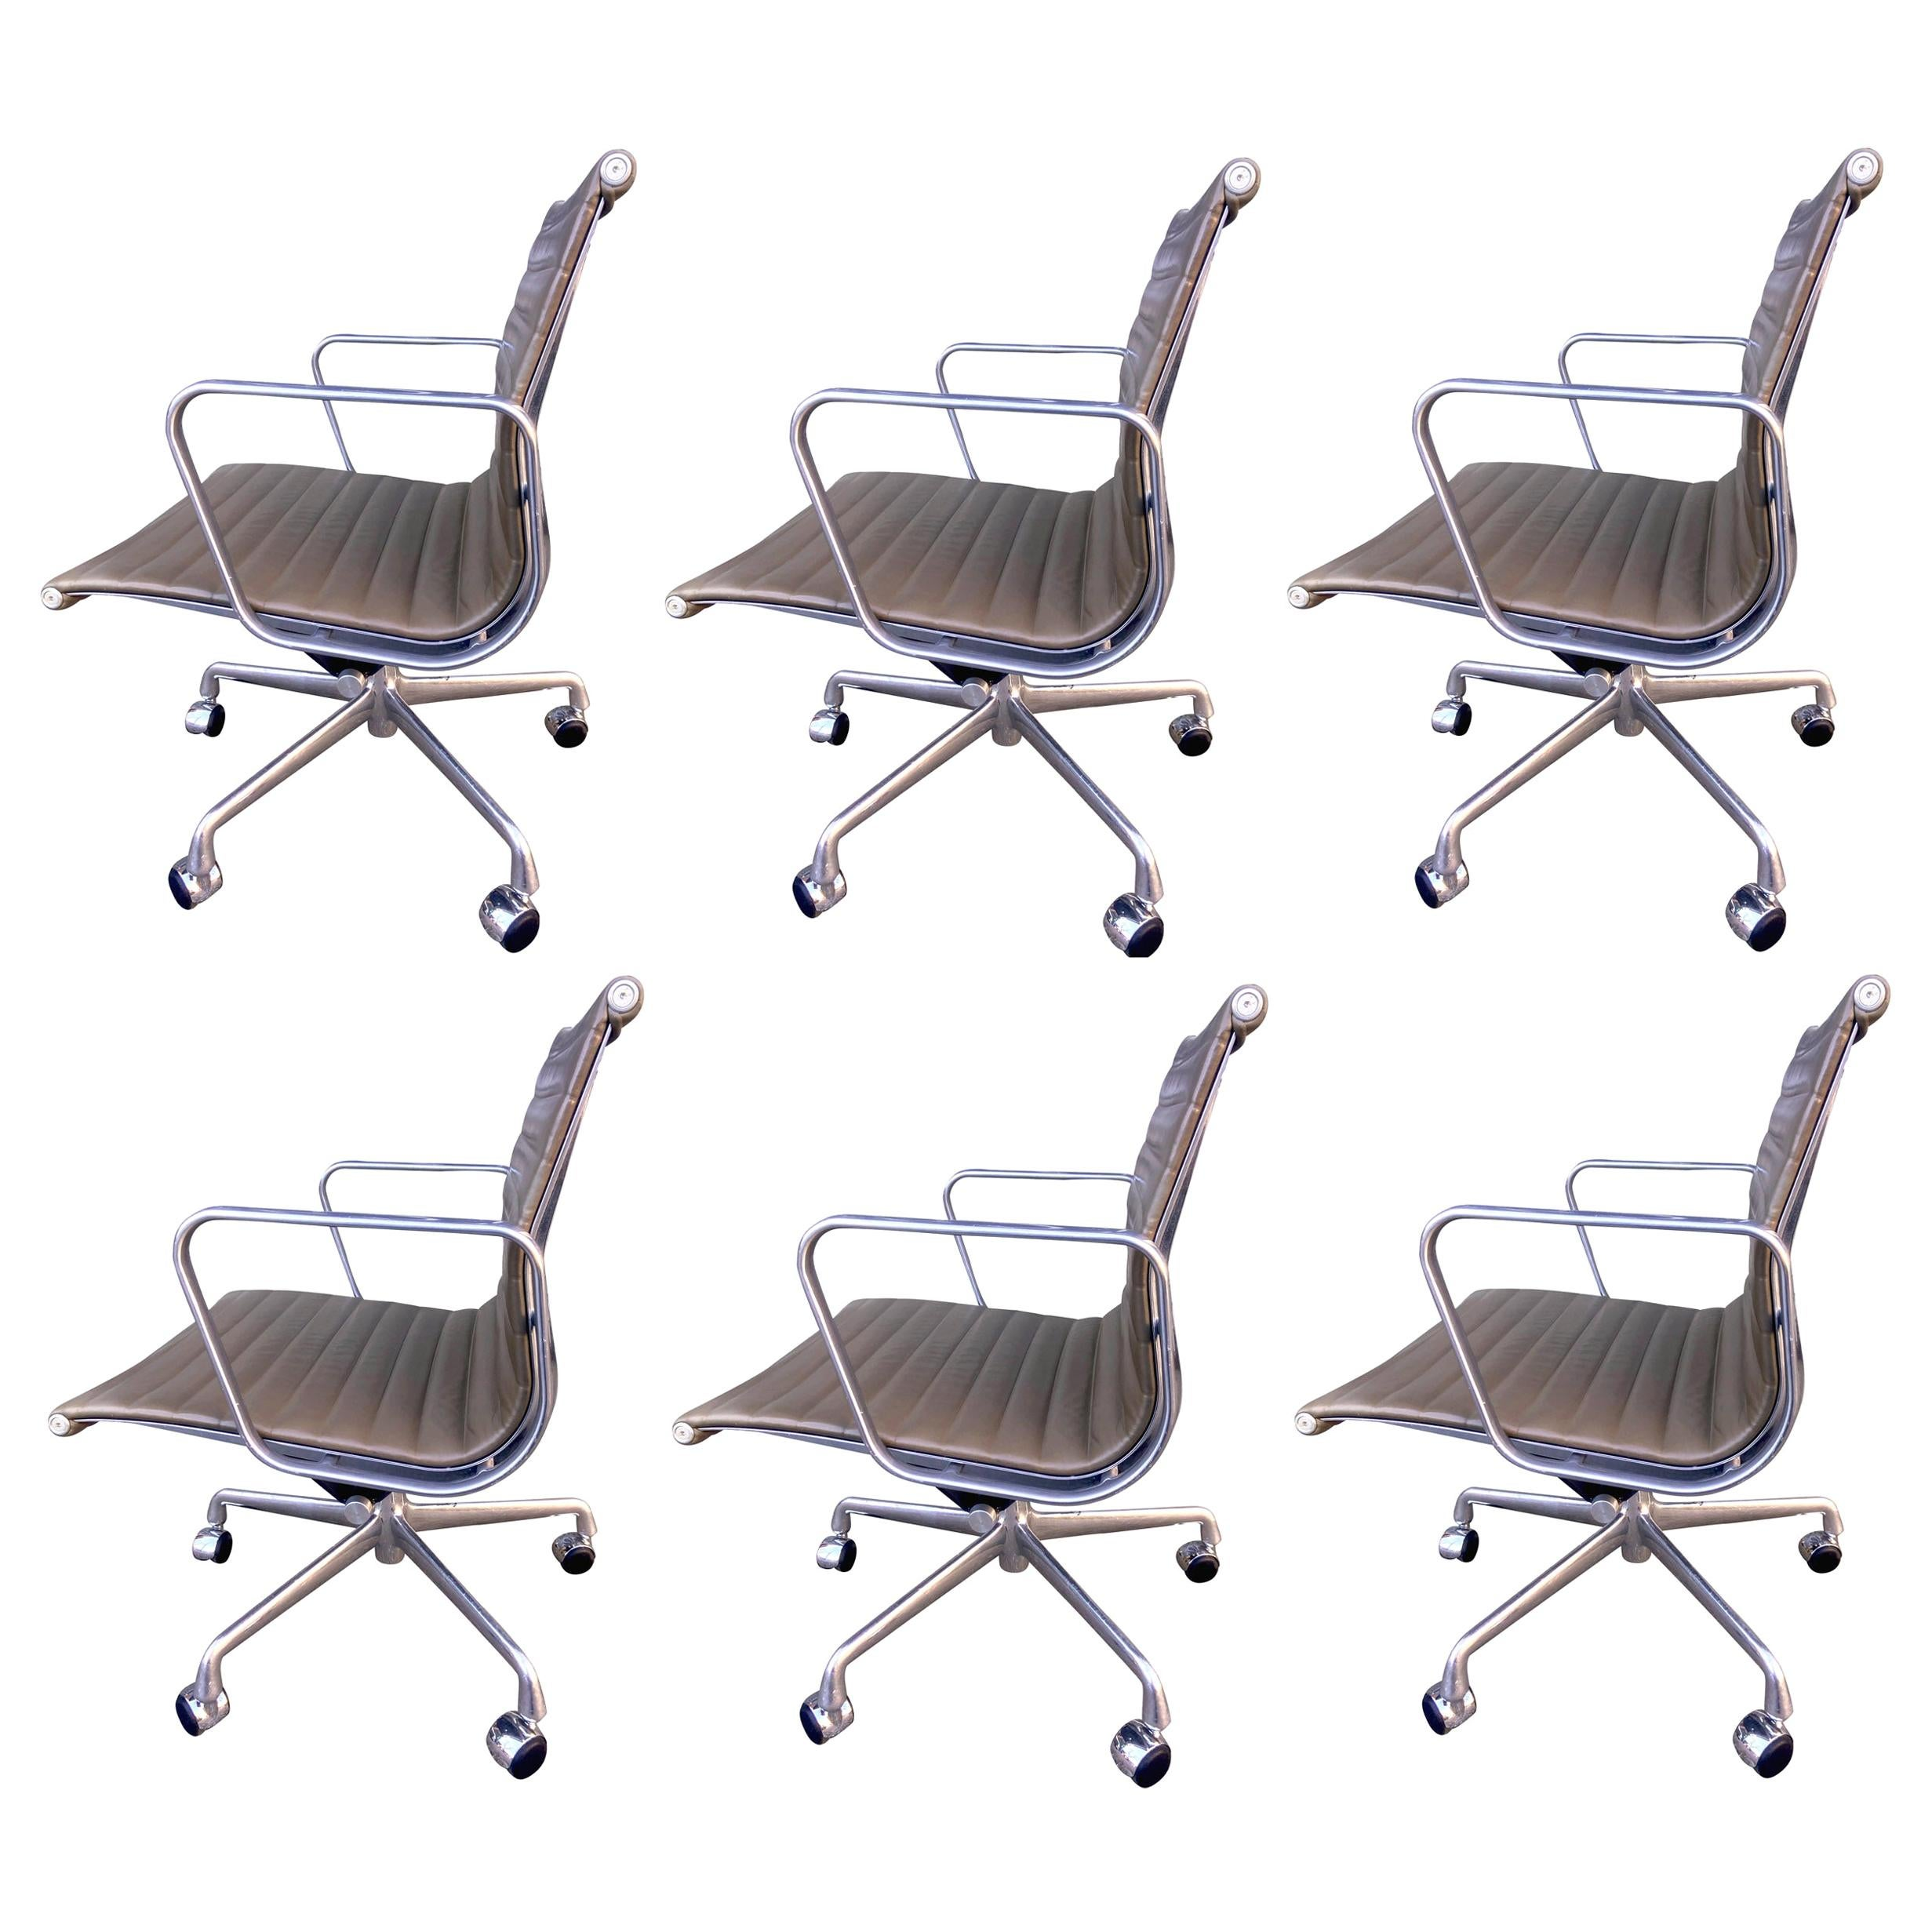 Midcentury Eames Aluminum Group Chairs in Tan / Brown Leather